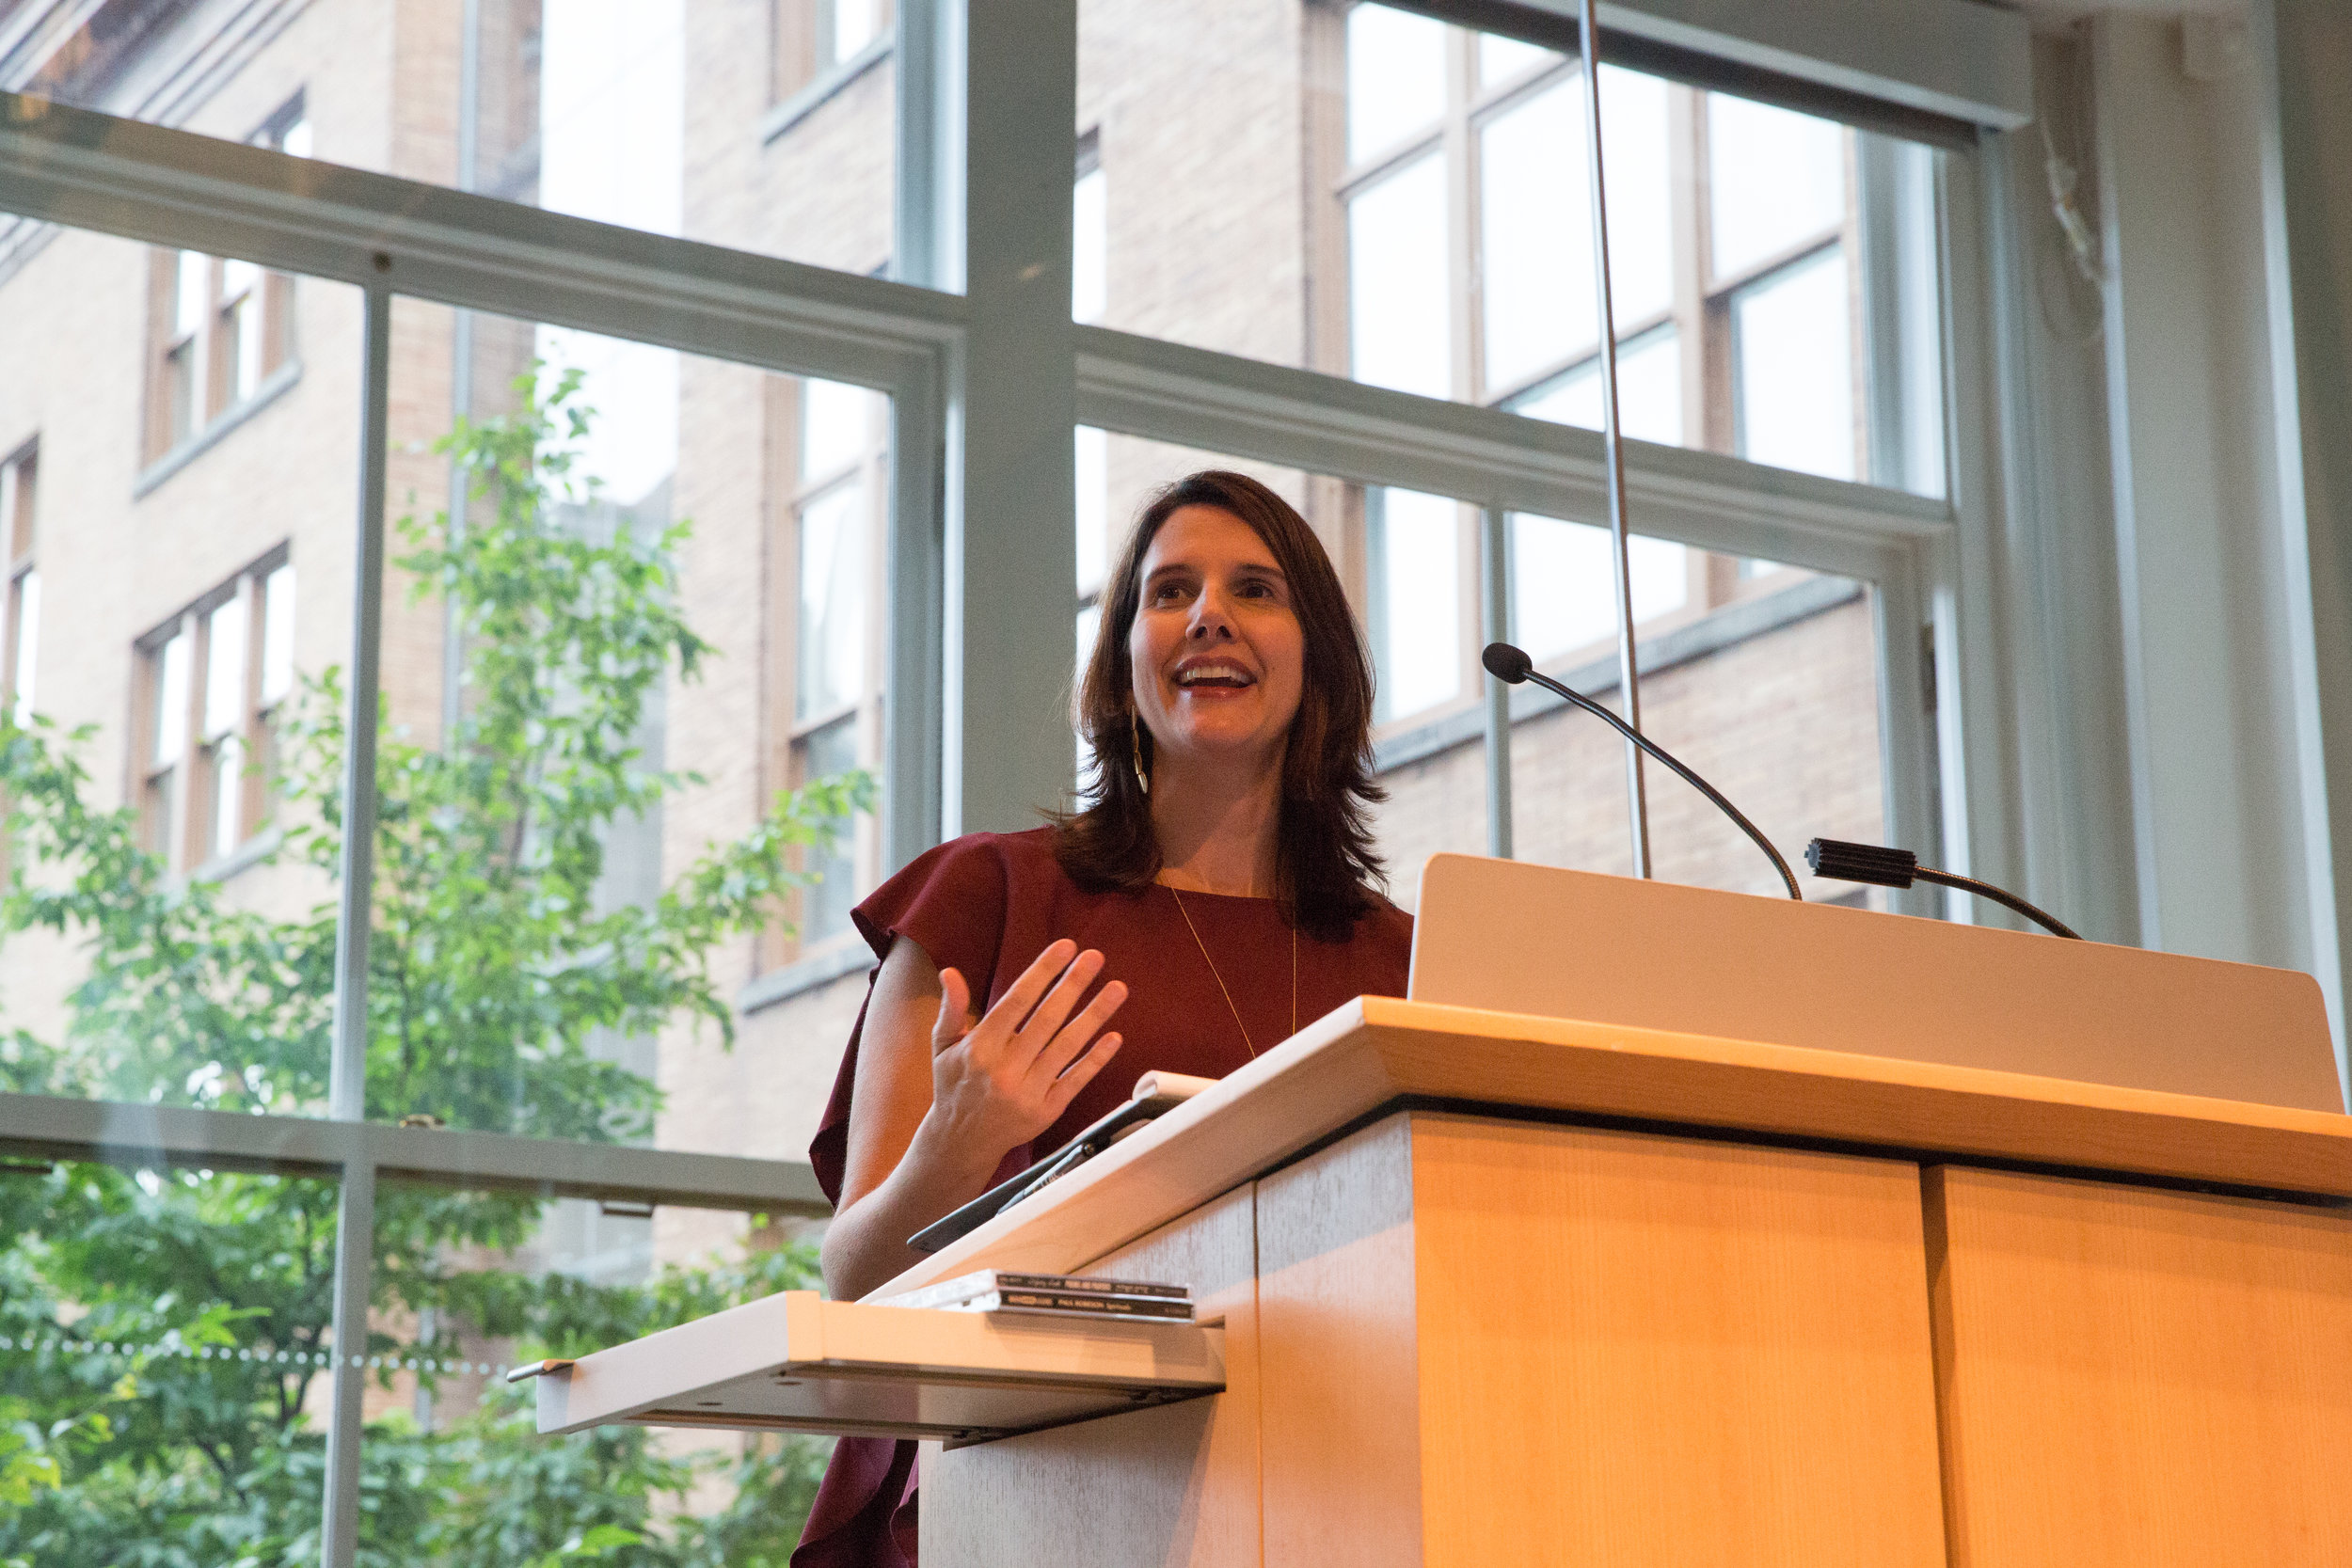 Speaking at the ITAC4 Conference. Photo by Reuben Radding.